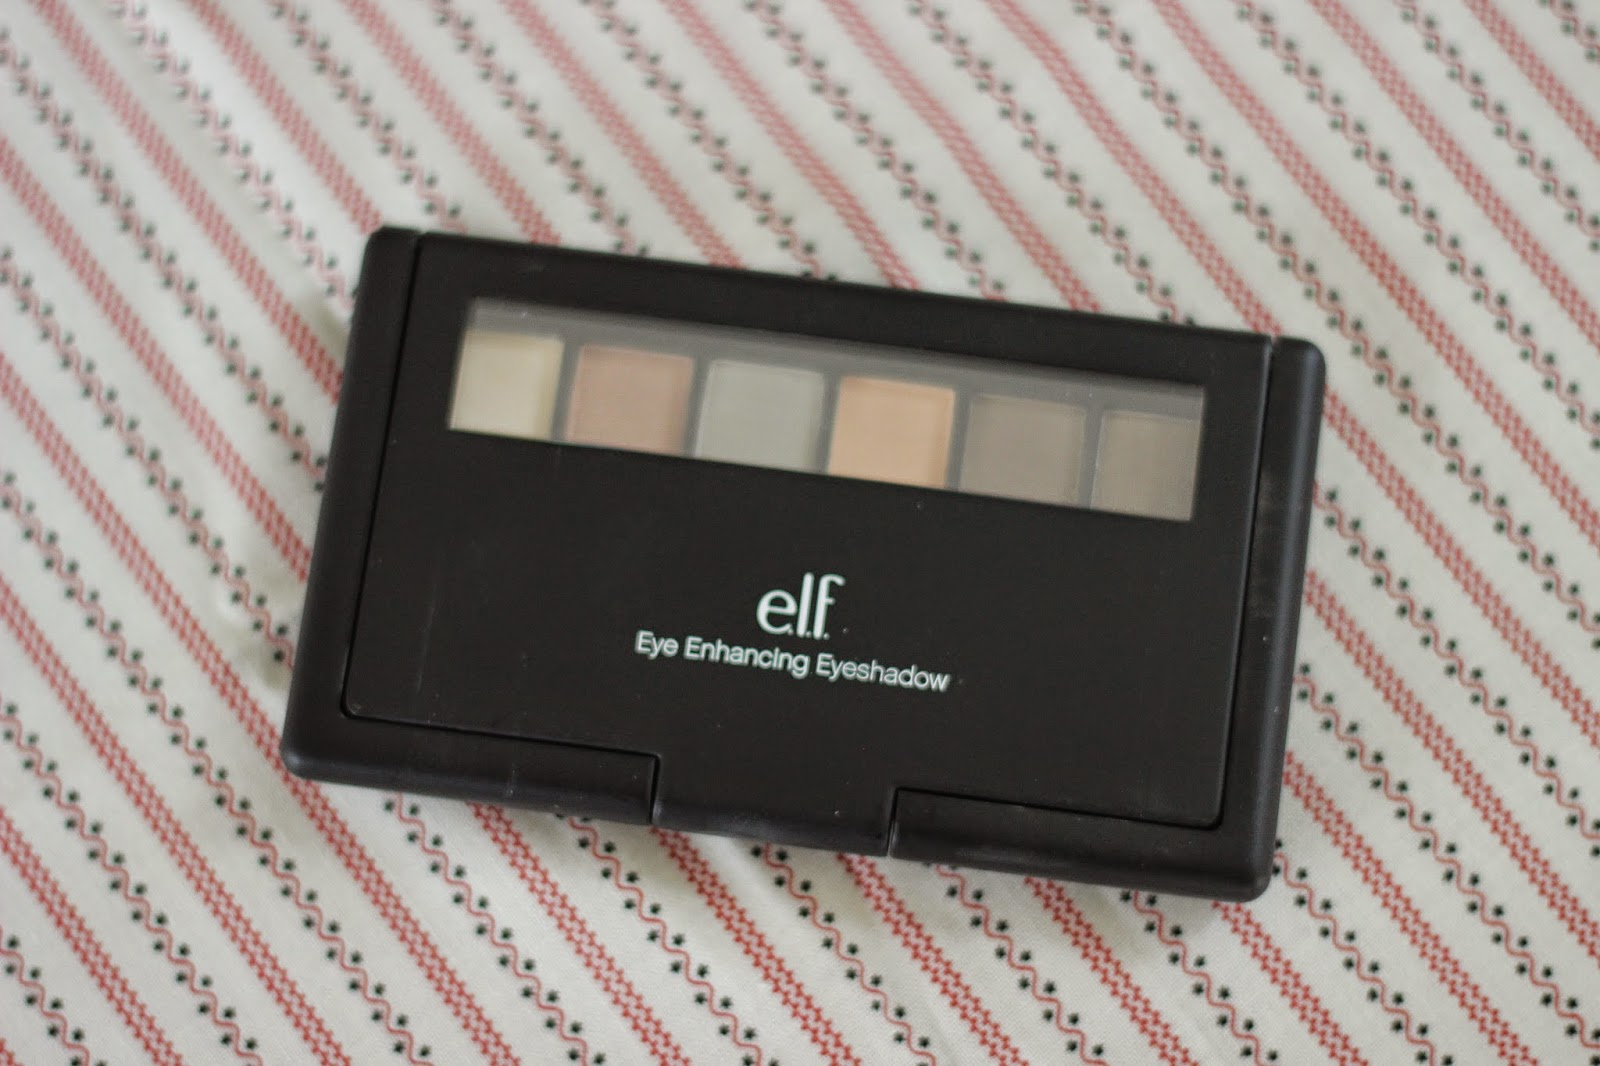 review look elf eye enhancing eyeshadow palette blue eyes 1